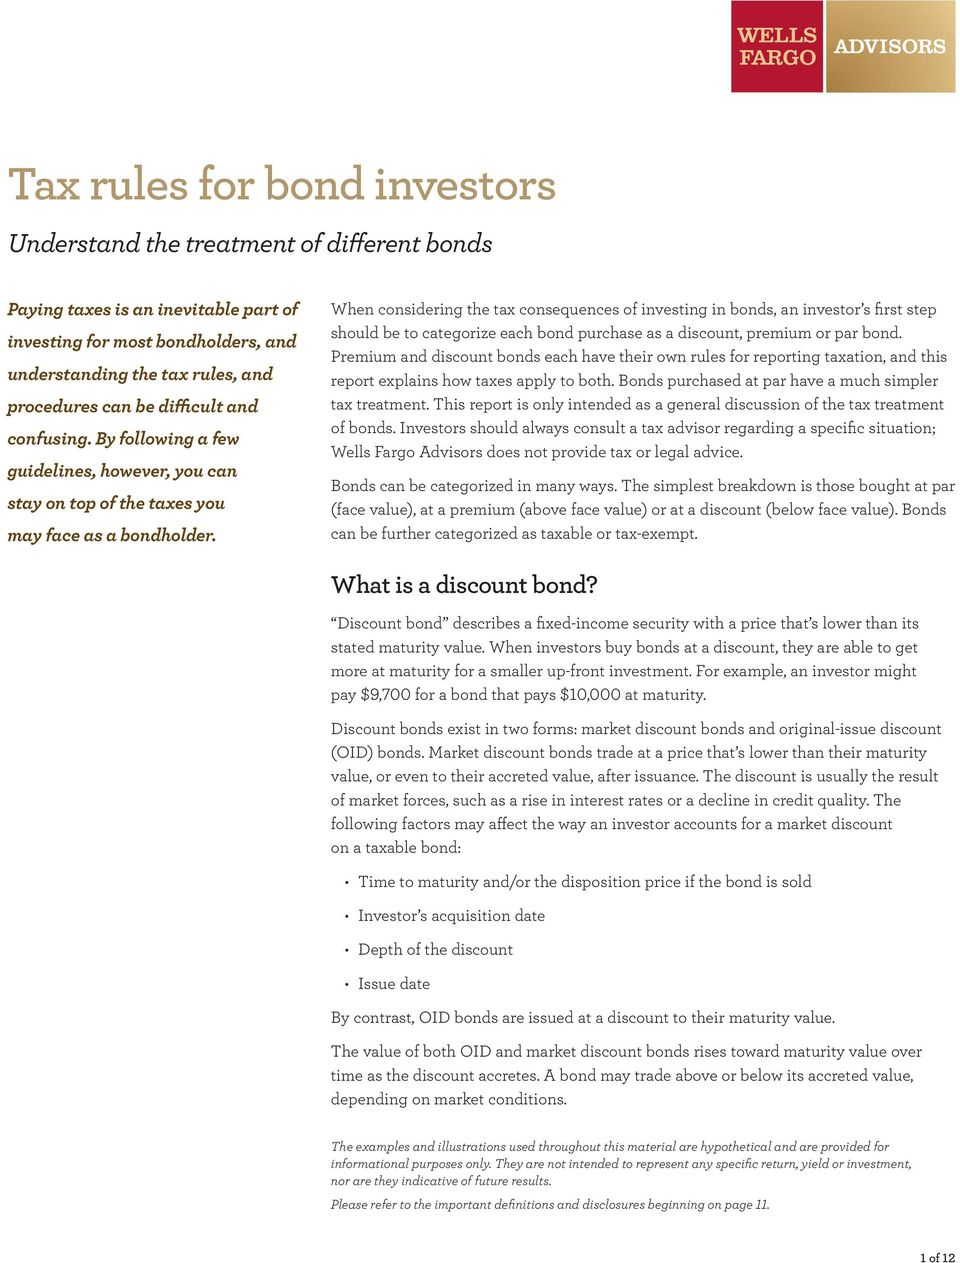 When considering the tax consequences of investing in bonds, an investor s first step should be to categorize each bond purchase as a discount, premium or par bond.